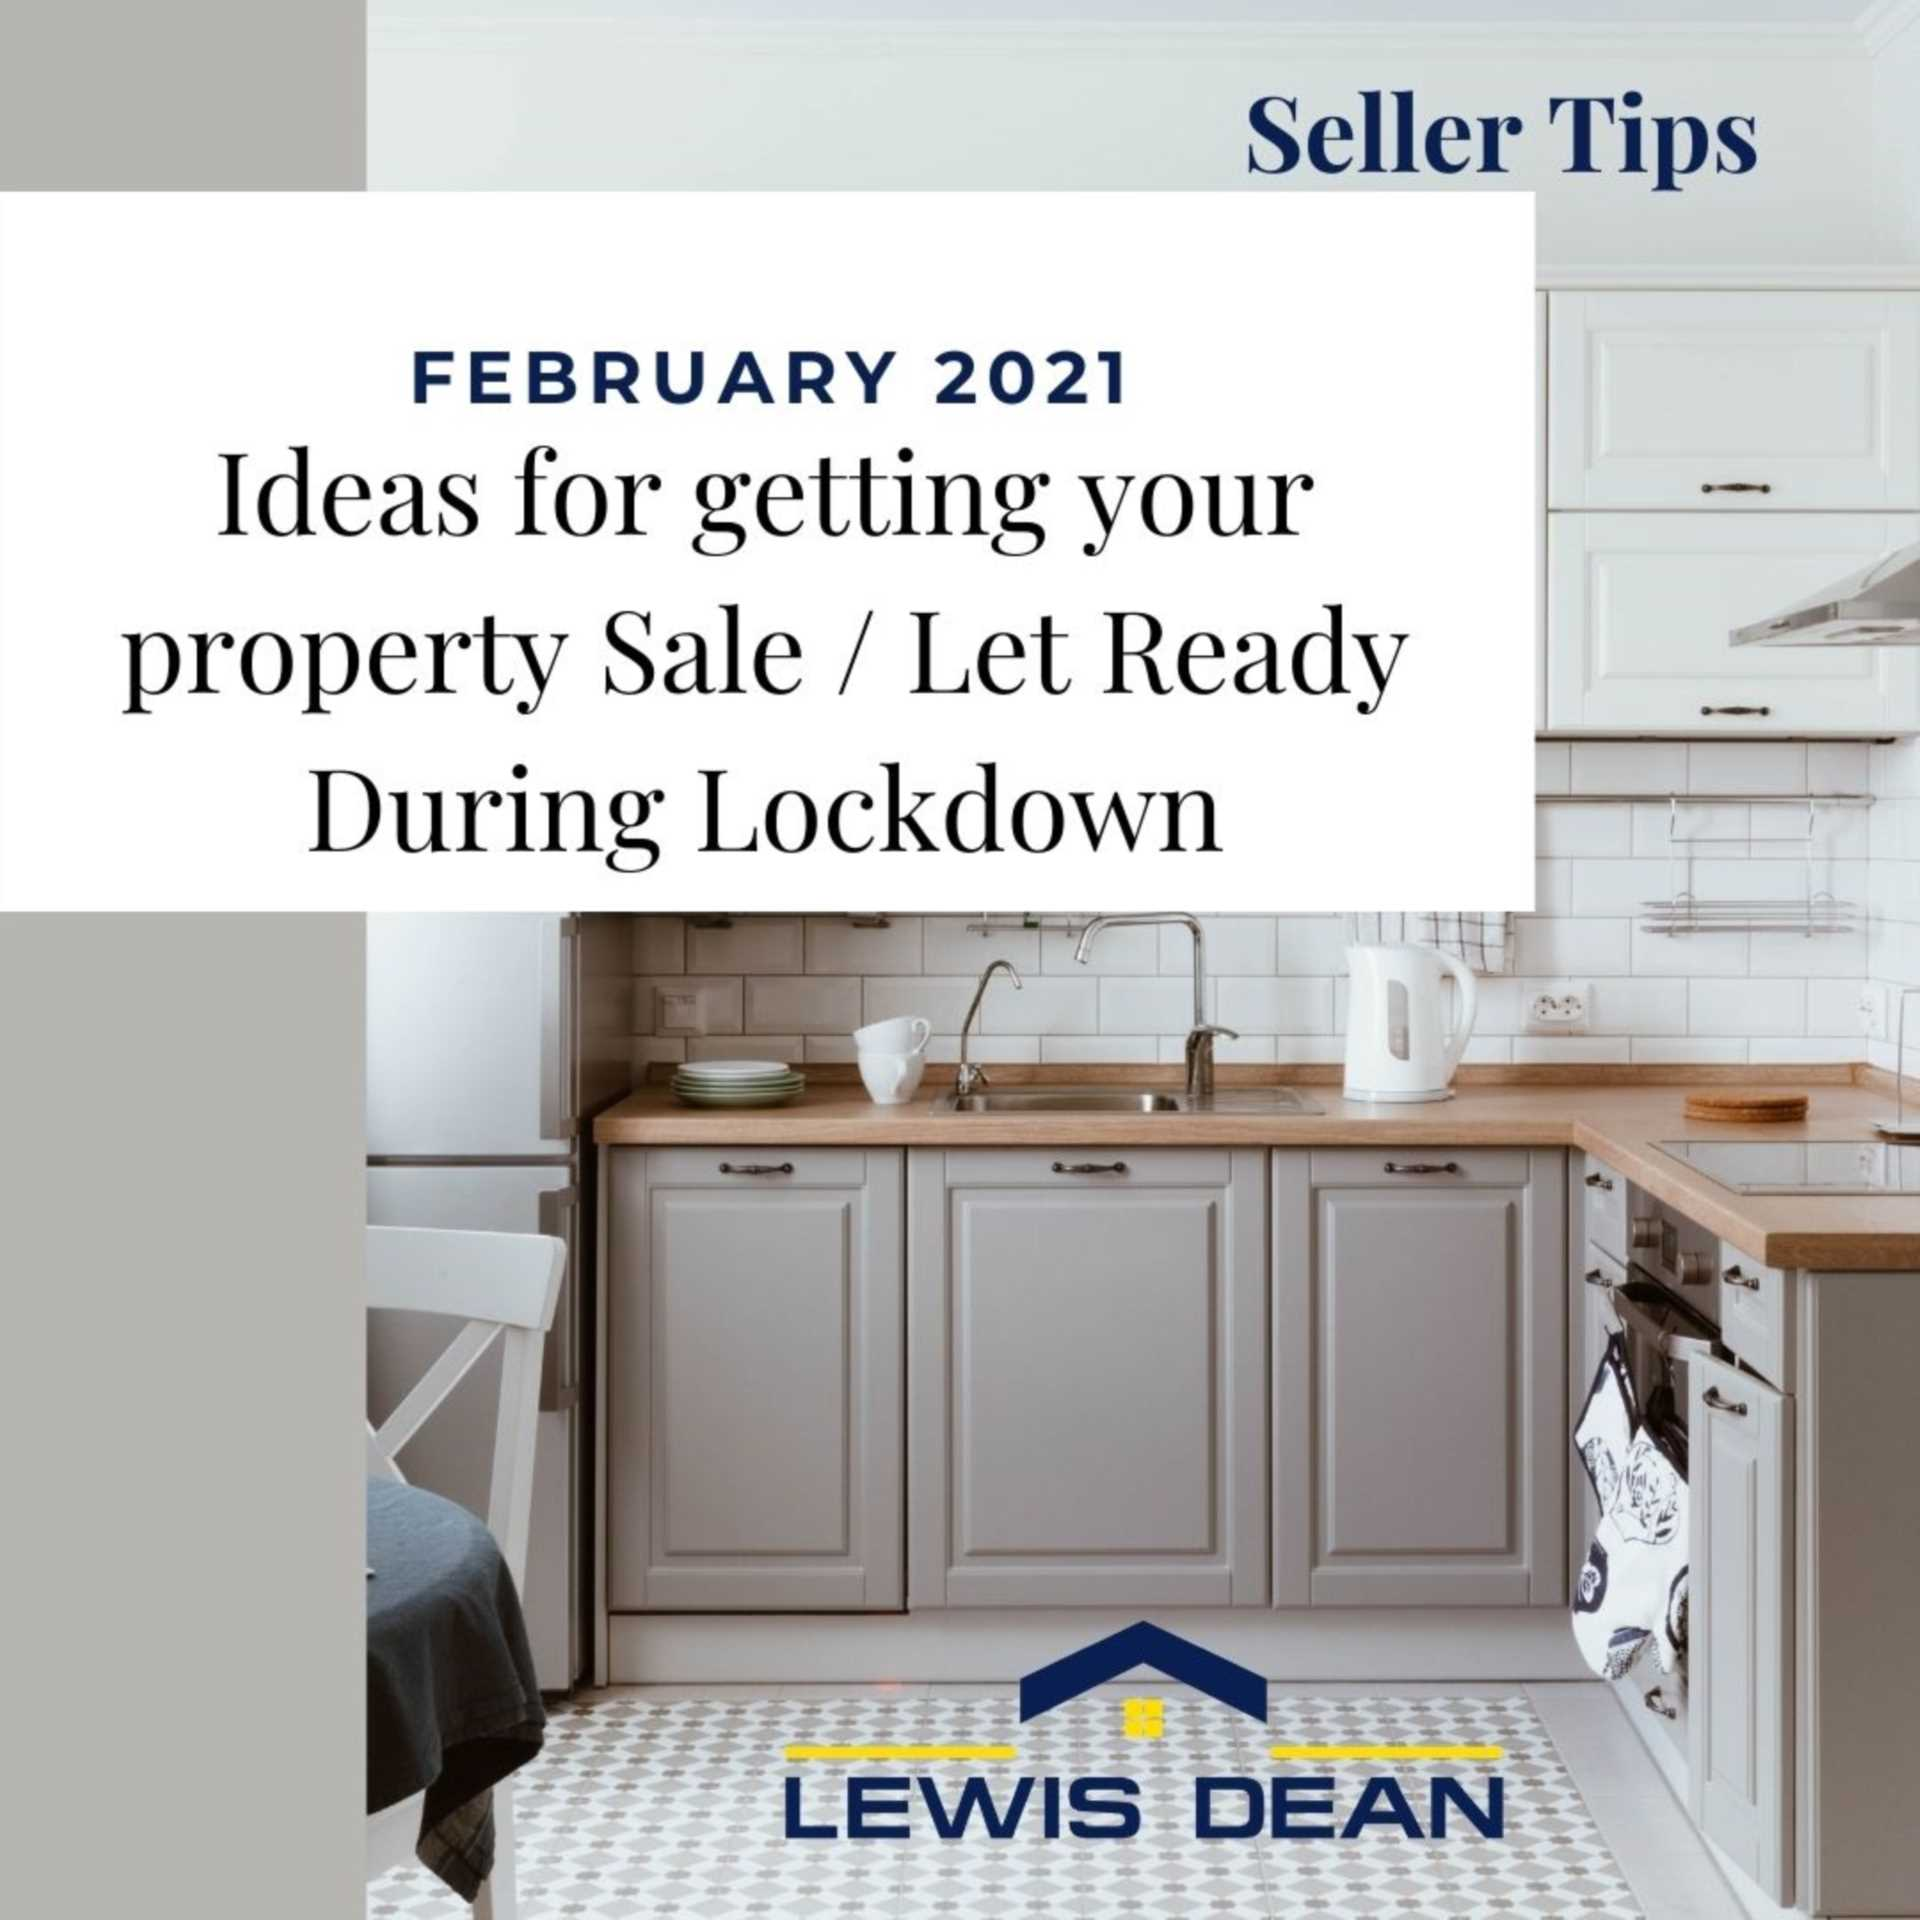 Poole Seller/Landlord Tips - Organise Your Home To Get Ready for Selling /Letting During Lockdown